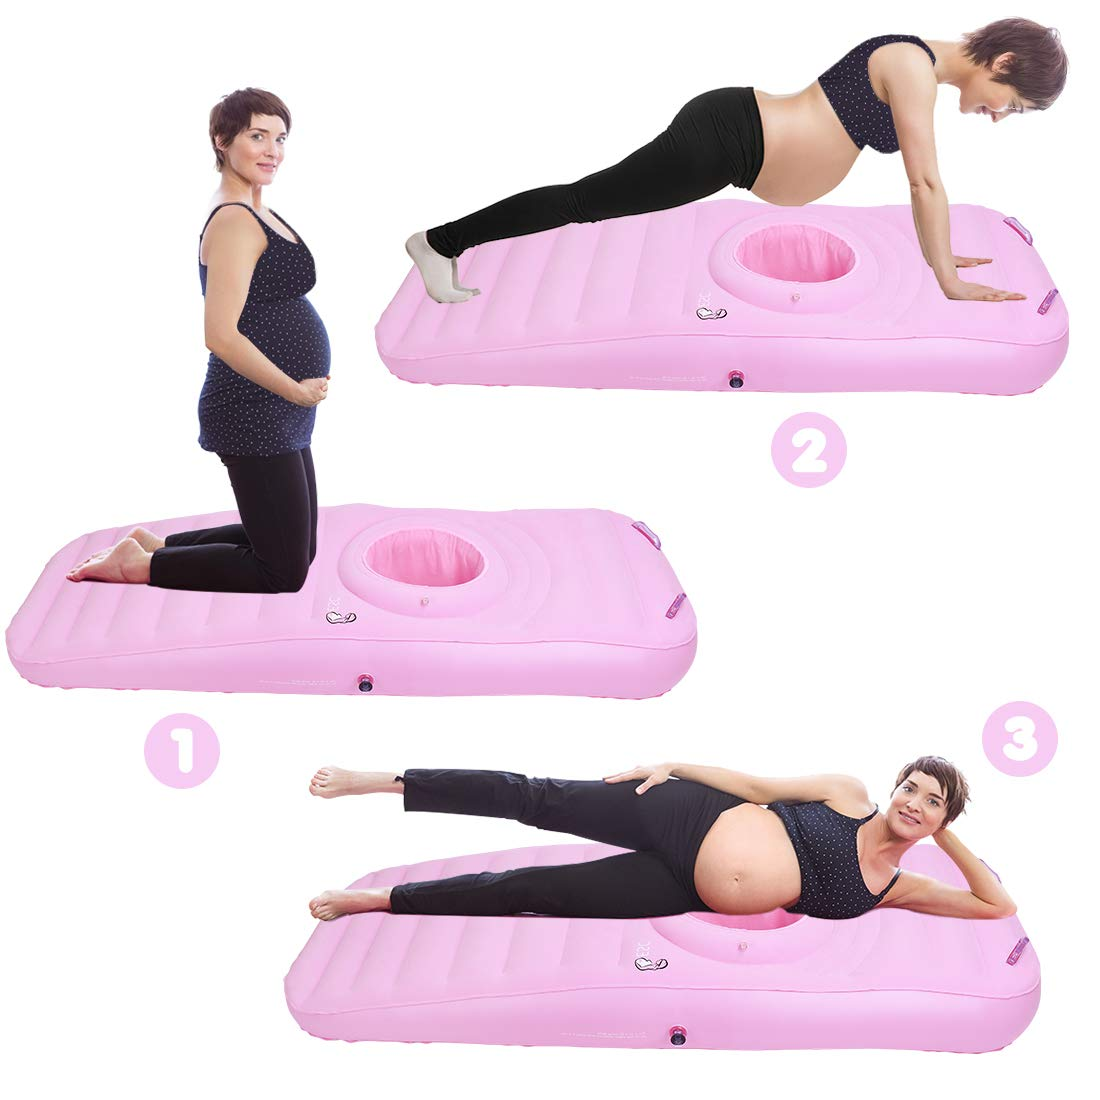 besc inflatable maternity pillow for women pregnancy full body massage pads with hole sleep on stomach relieve pregnant back pain